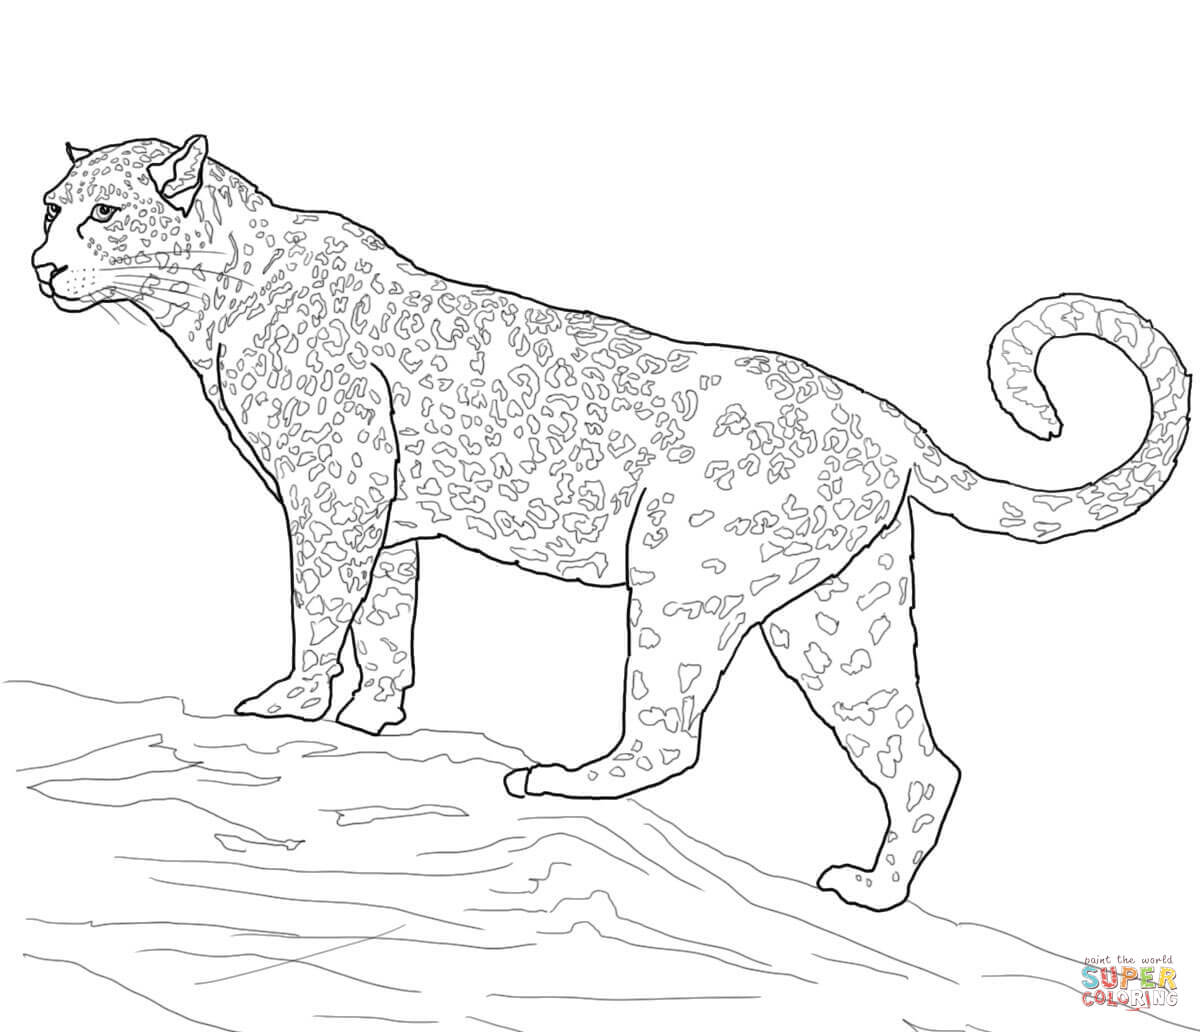 Jaguar Big Cat Coloring Page